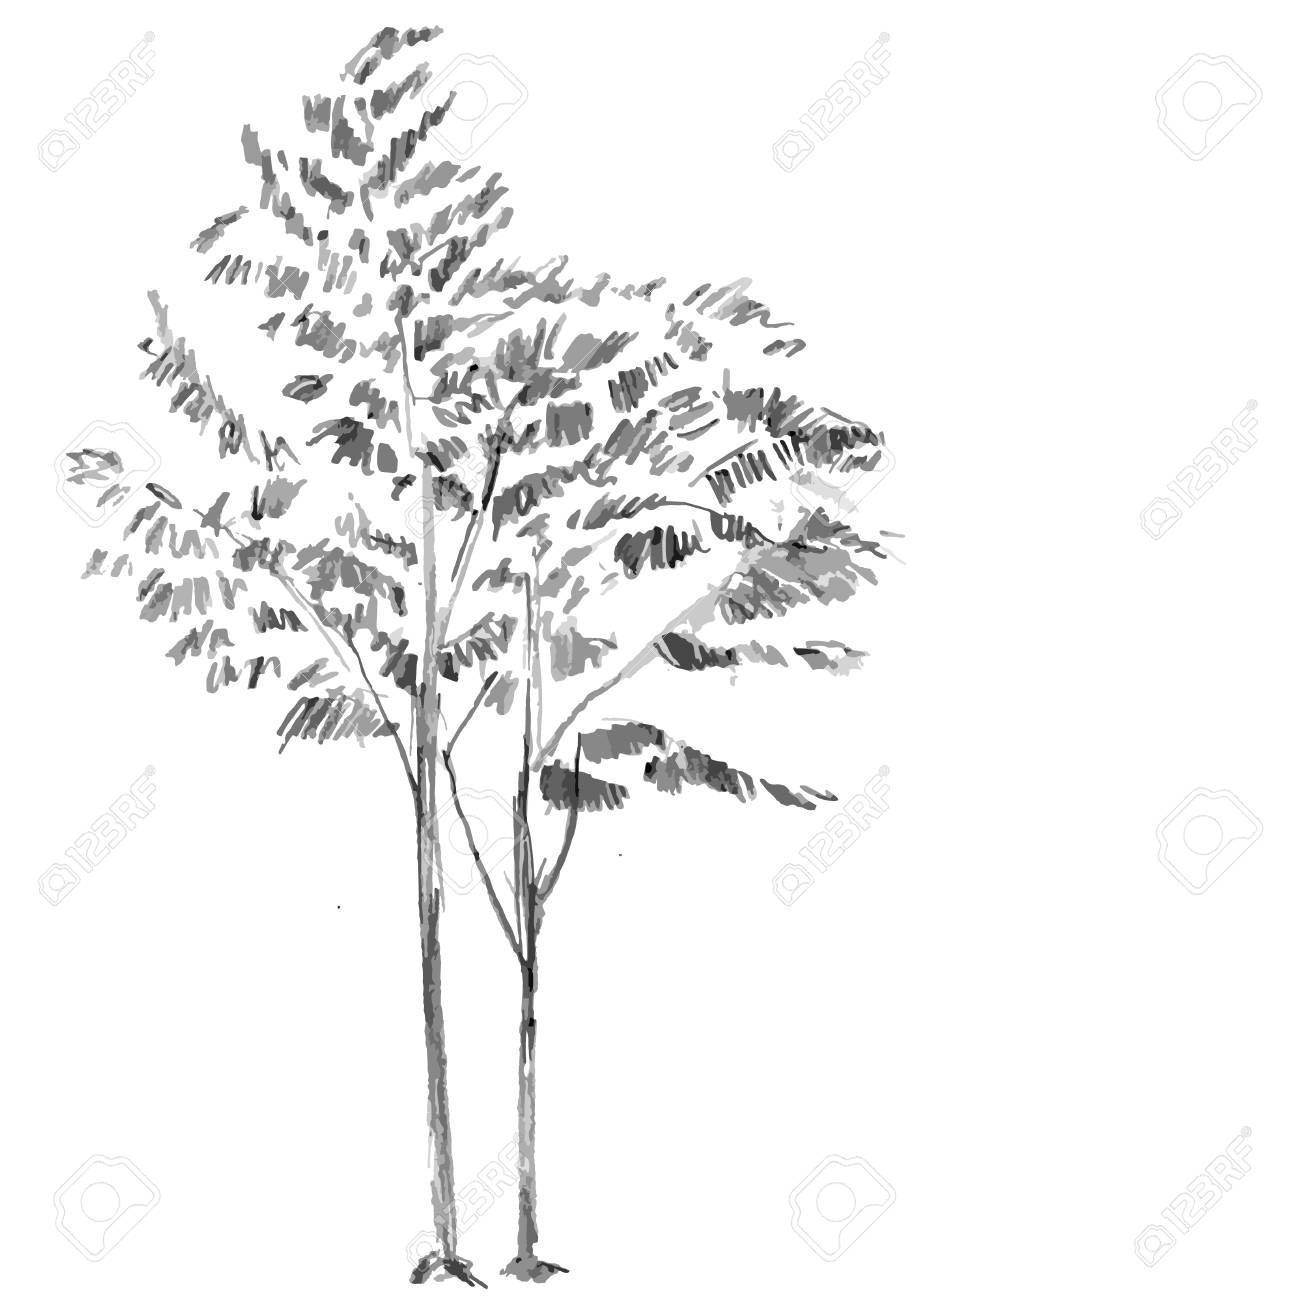 Hand Drawn Black Tree Without Leaves On White Background Branches